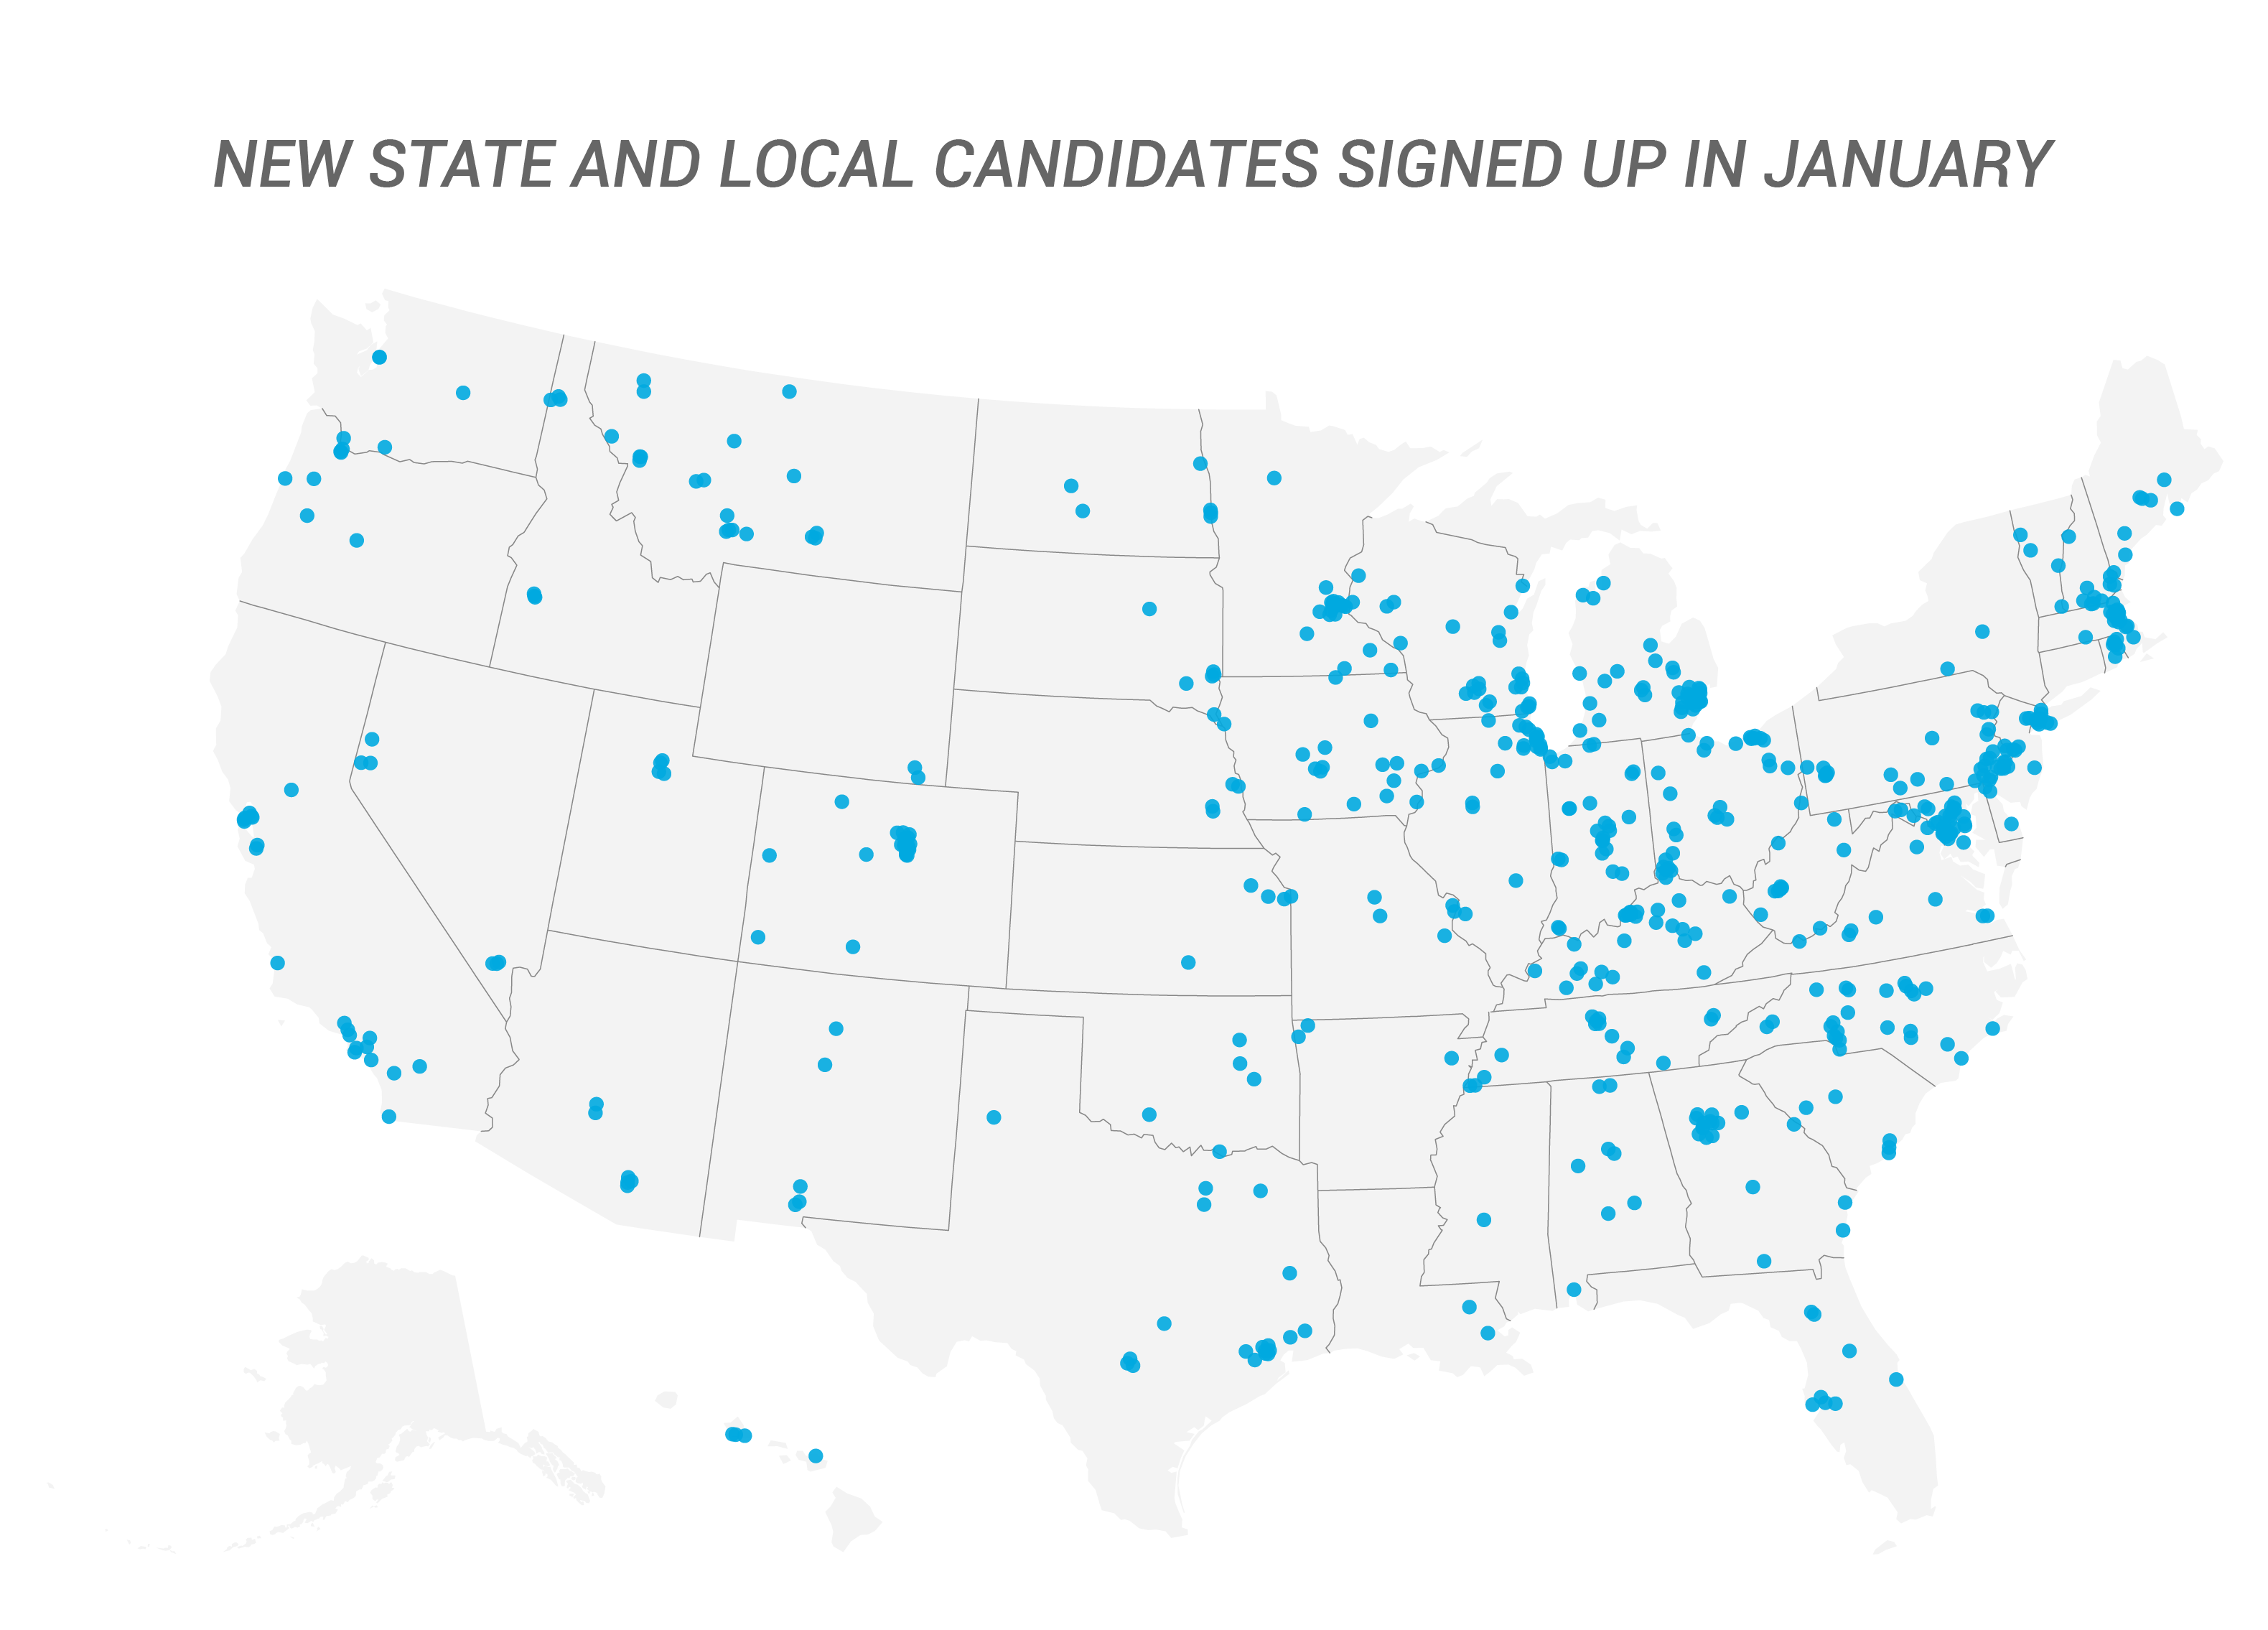 New State and Local Candidates Signed Up in January